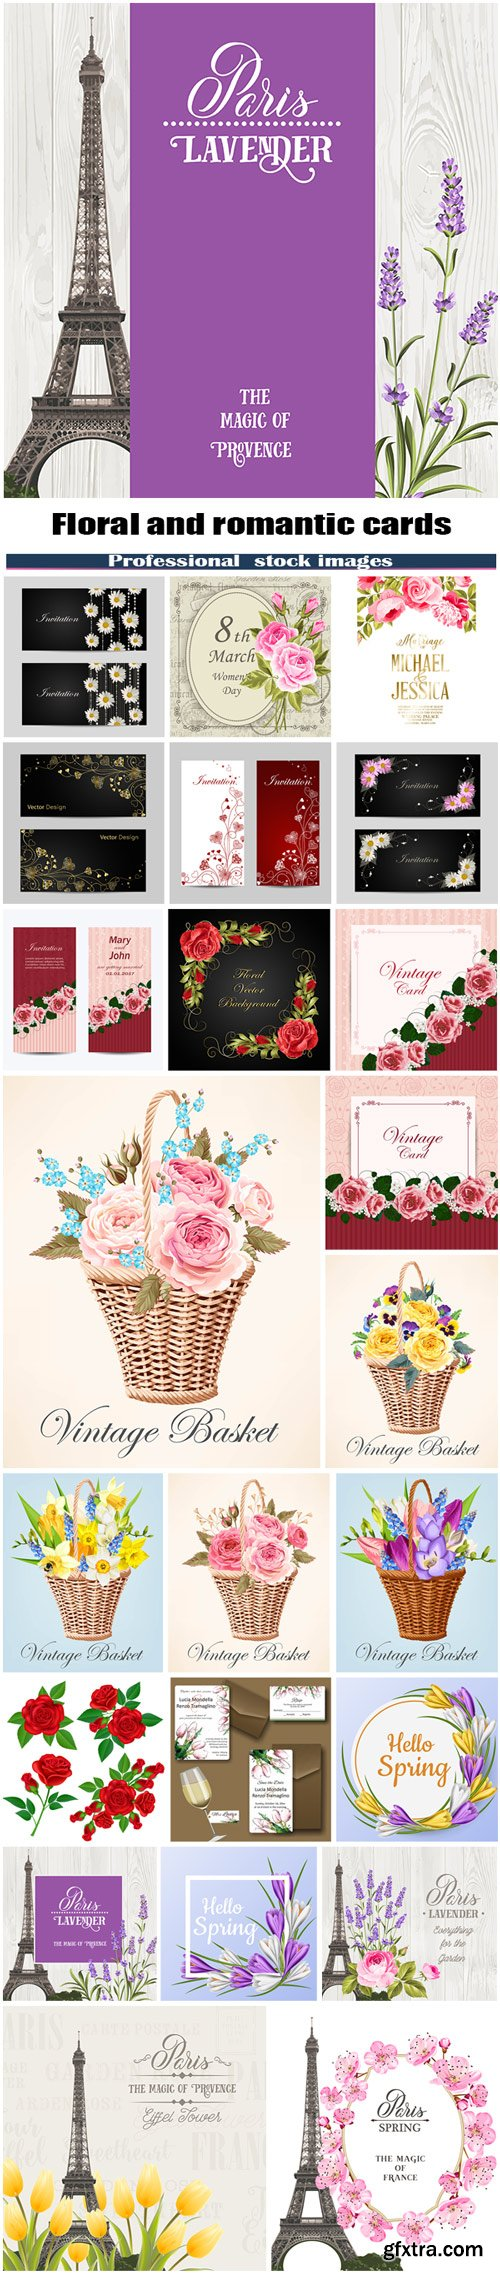 Floral and romantic cards